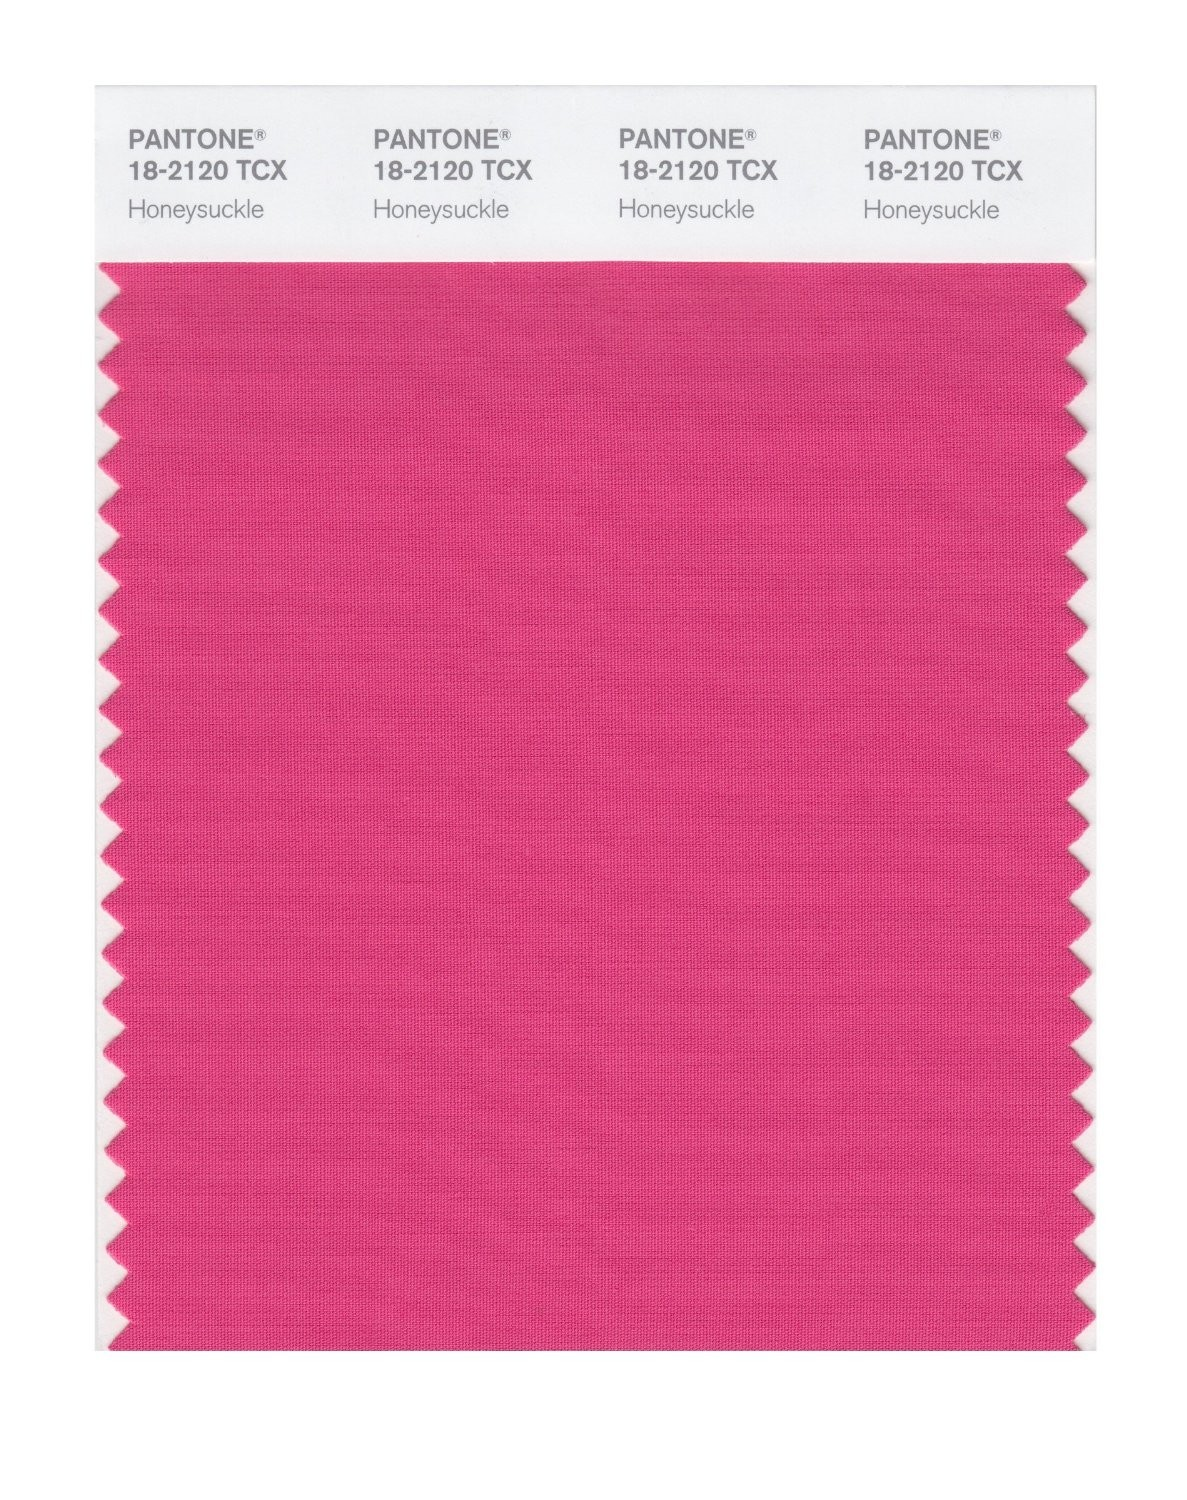 Pantone 18-2120 TCX Swatch Card Honeysuckle